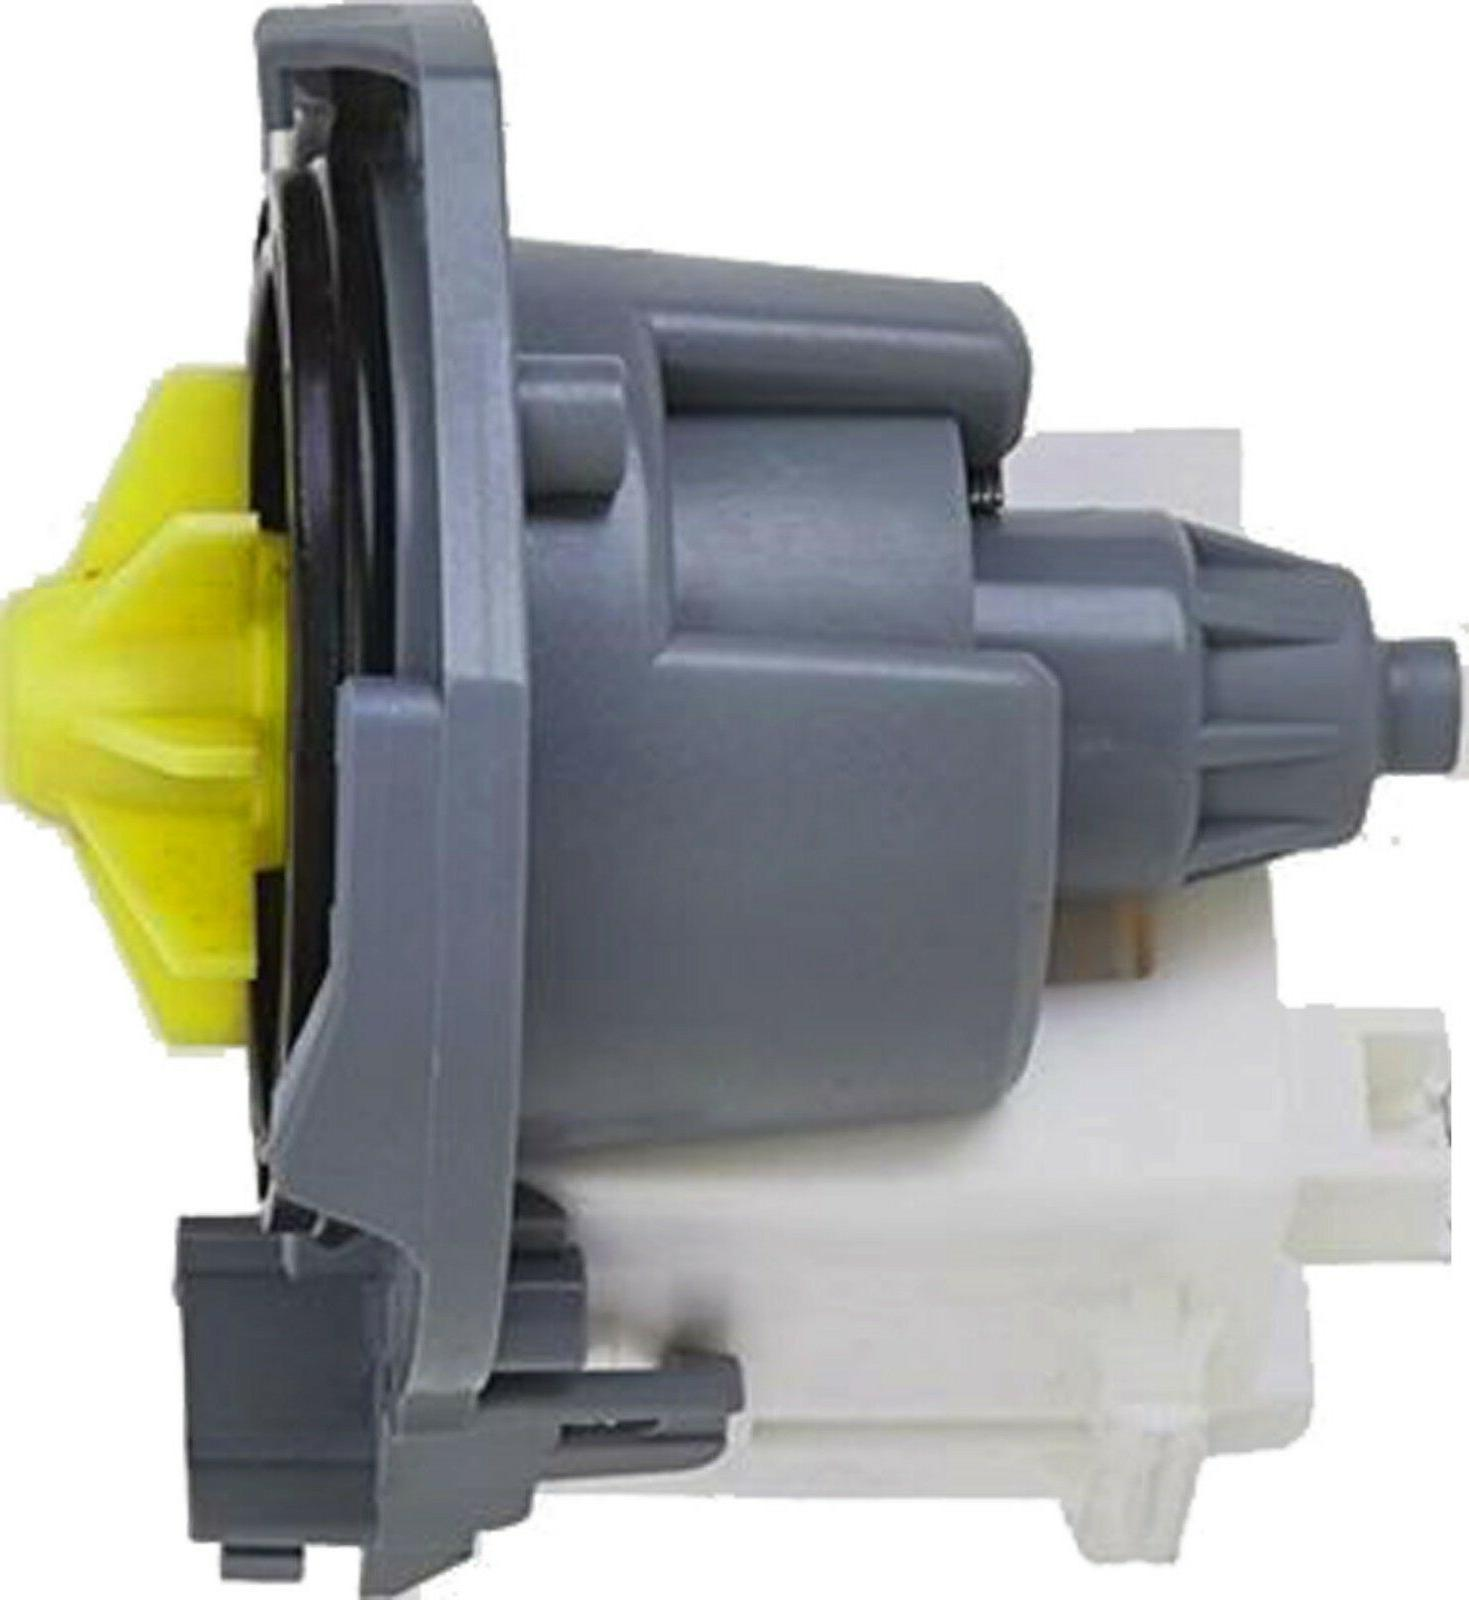 wpw10348269 ap6020066 ps11753379 for whirlpool kenmore dishw